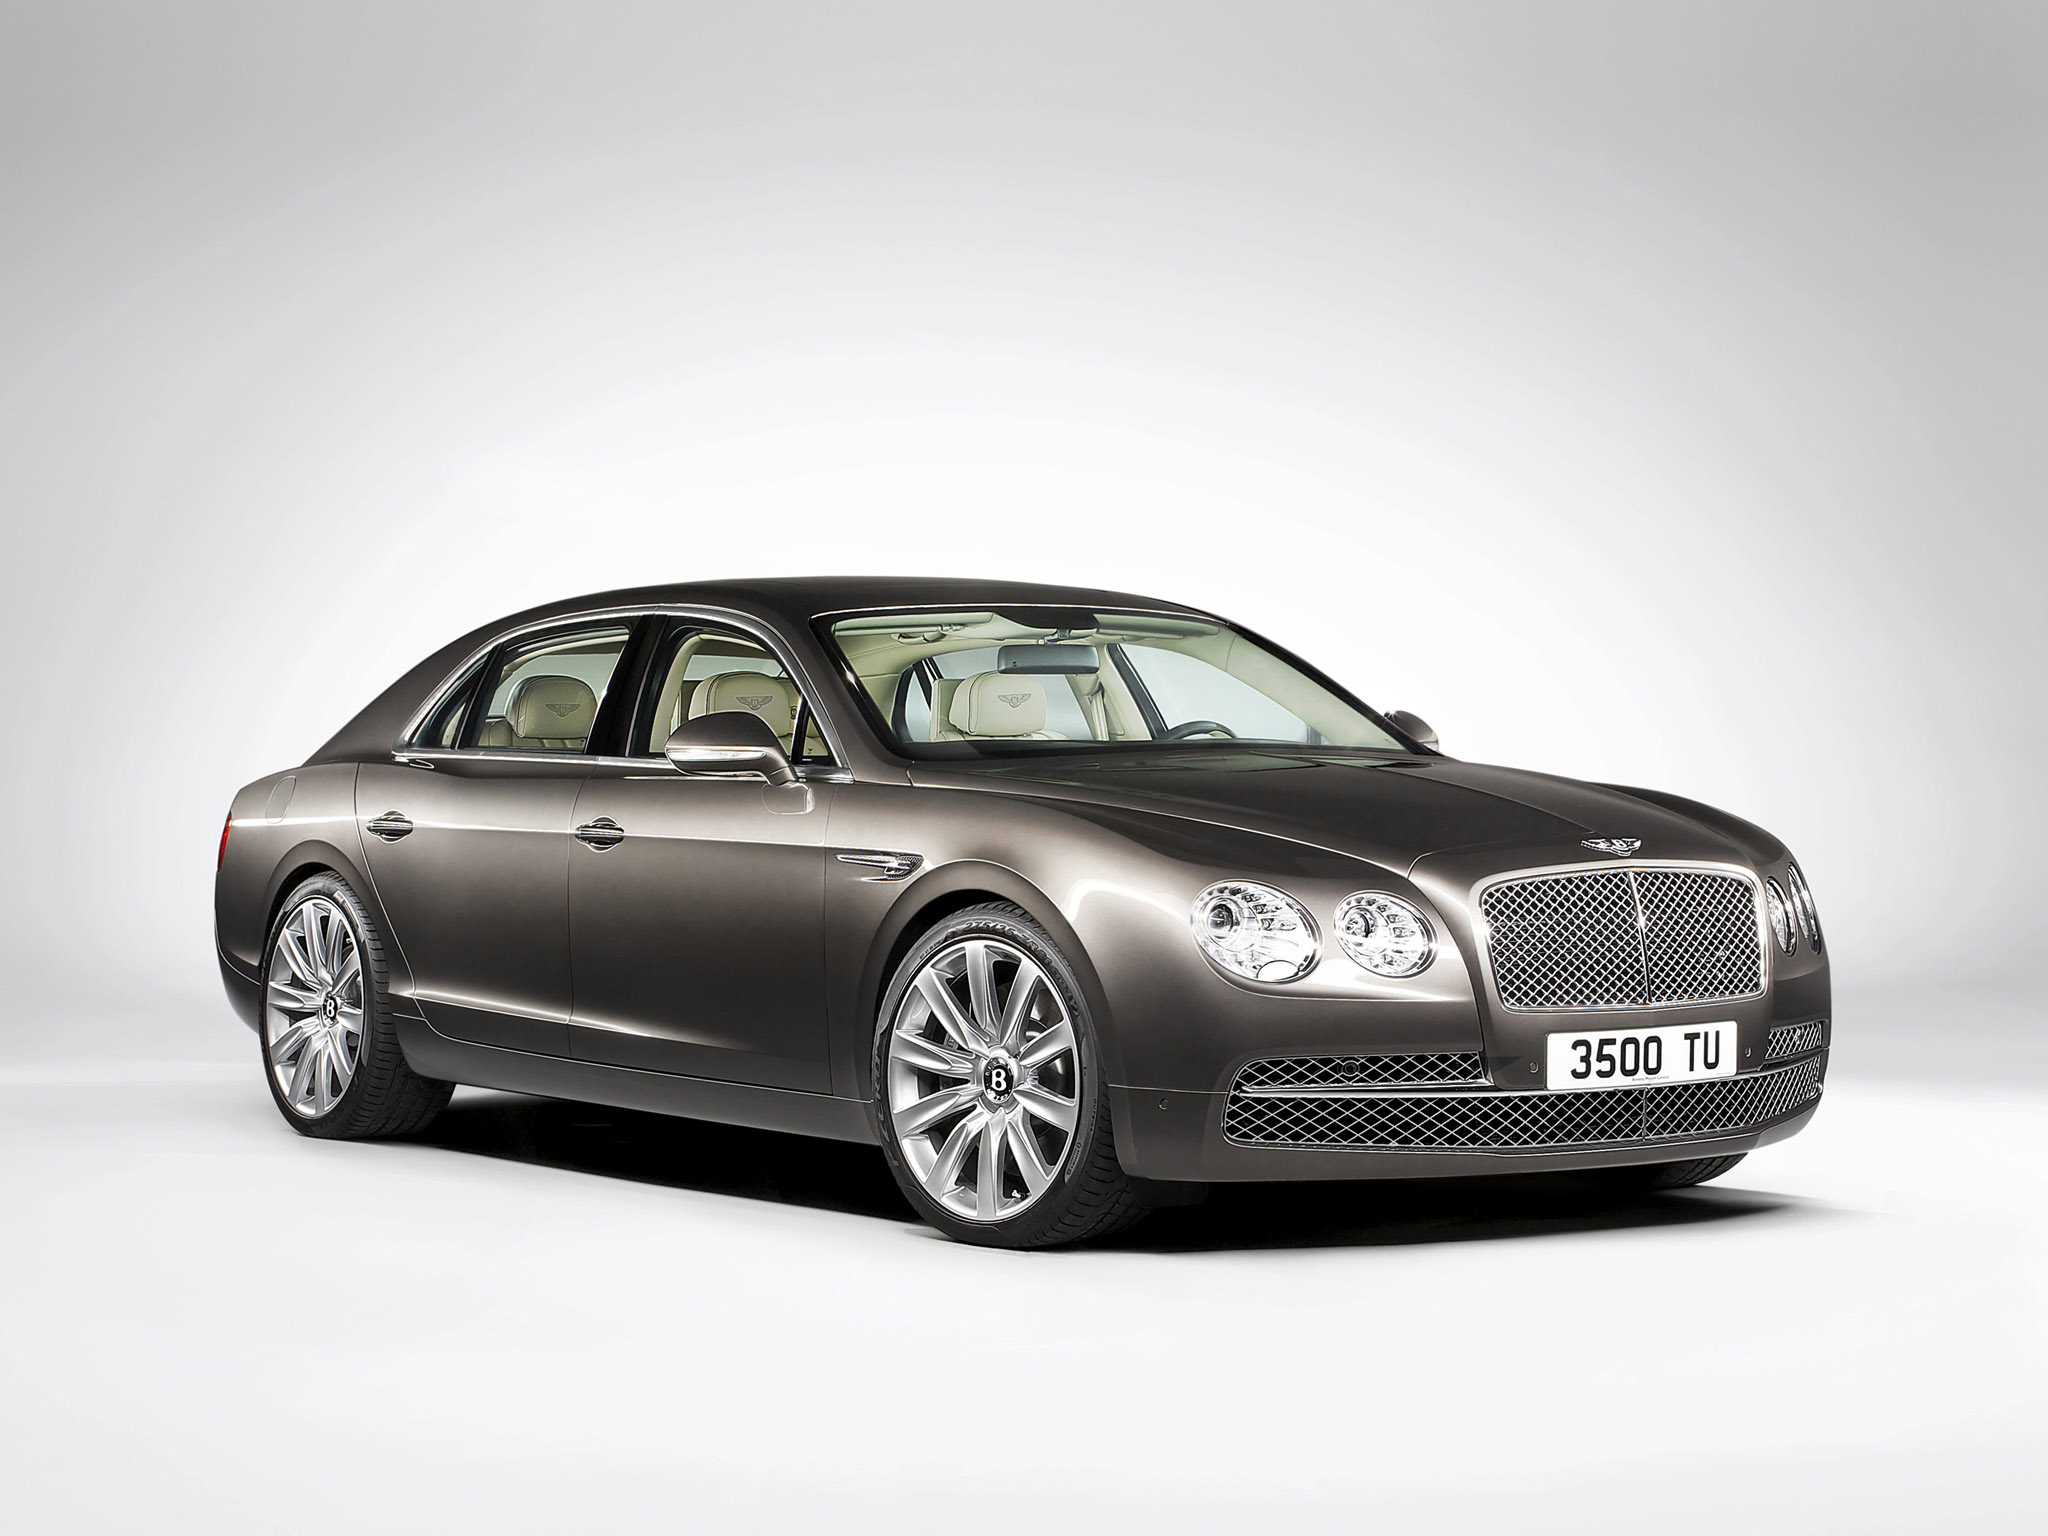 2013 Bentley Flying Spur